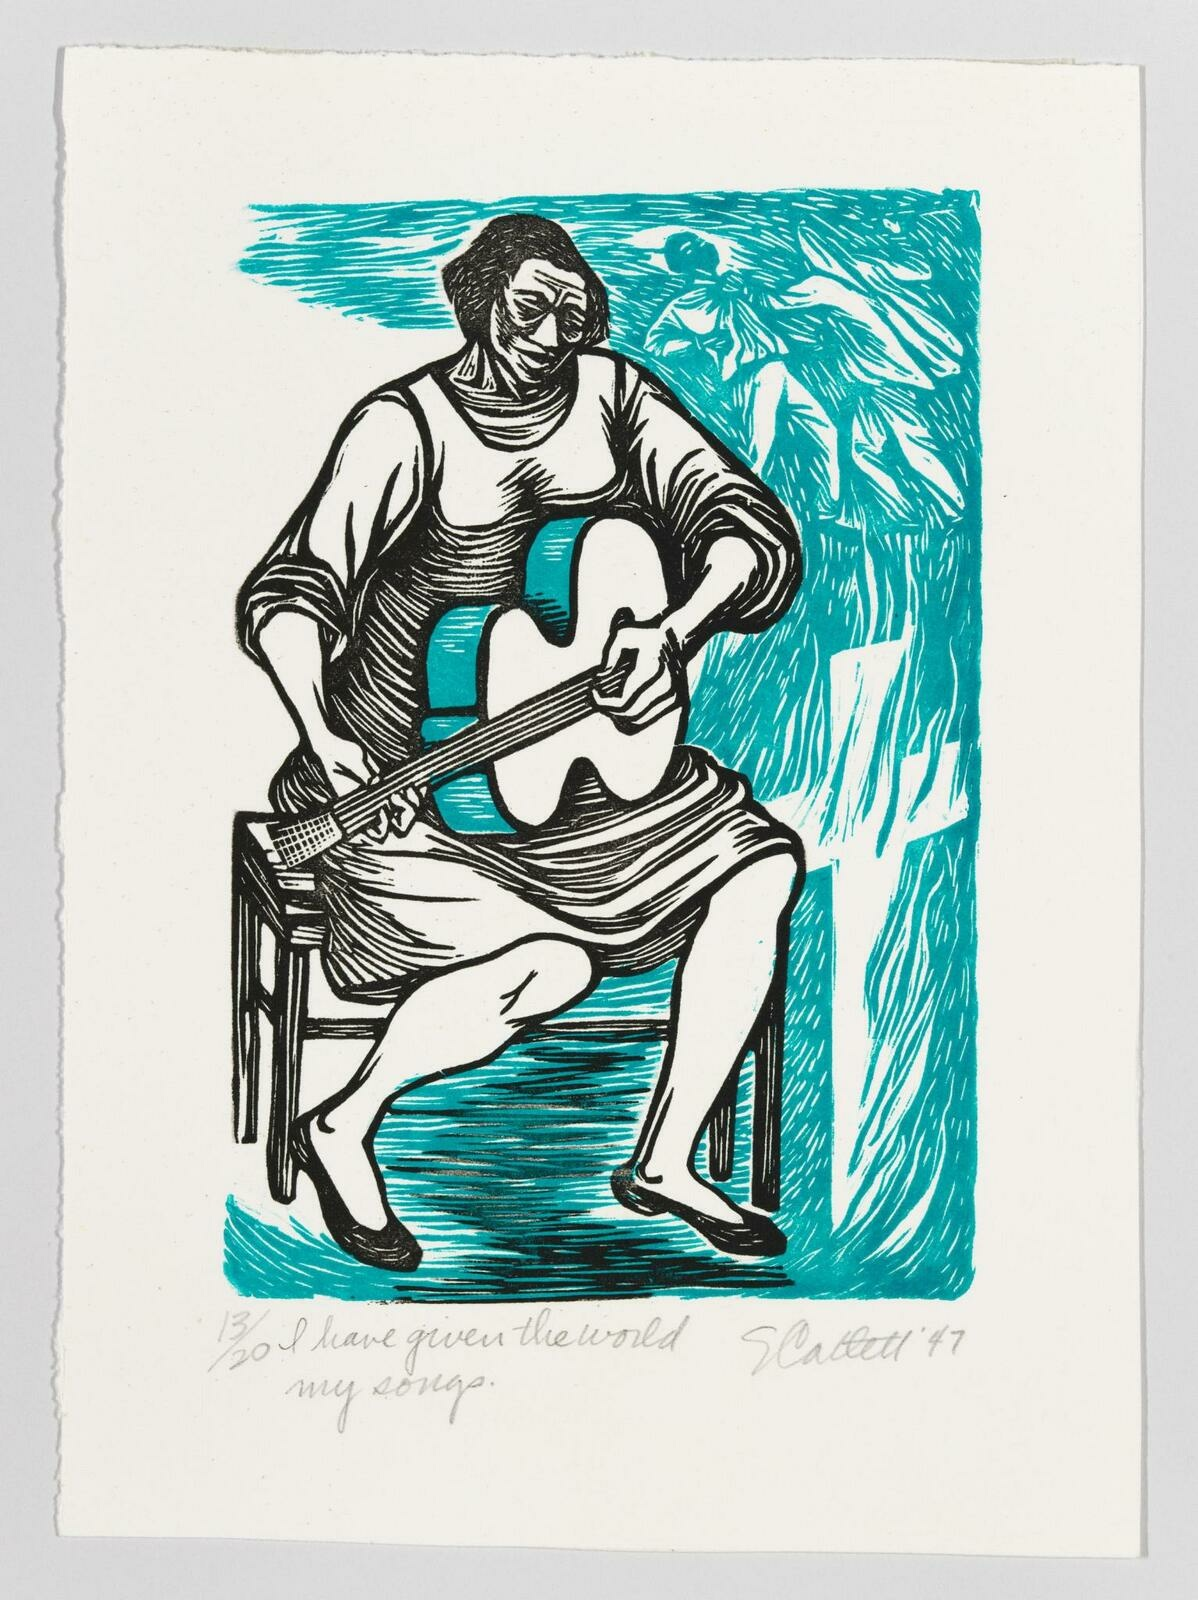 A Black woman sitting on a chair and playing guitar, printed in black, with teal depictions of violence against a Black man.